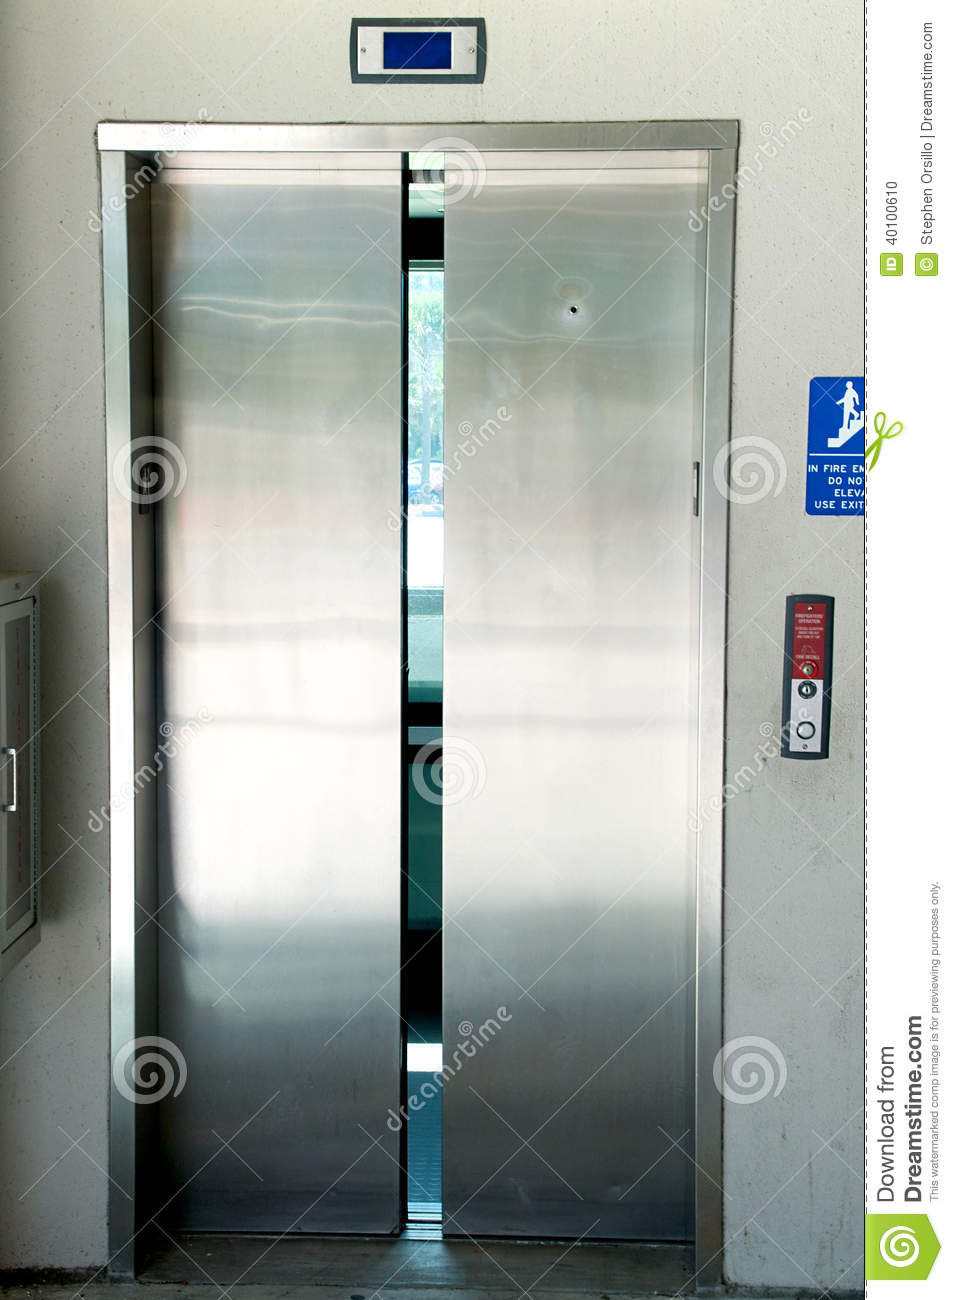 Stainless Steel Elevator Doors Closing Stock Photo Image